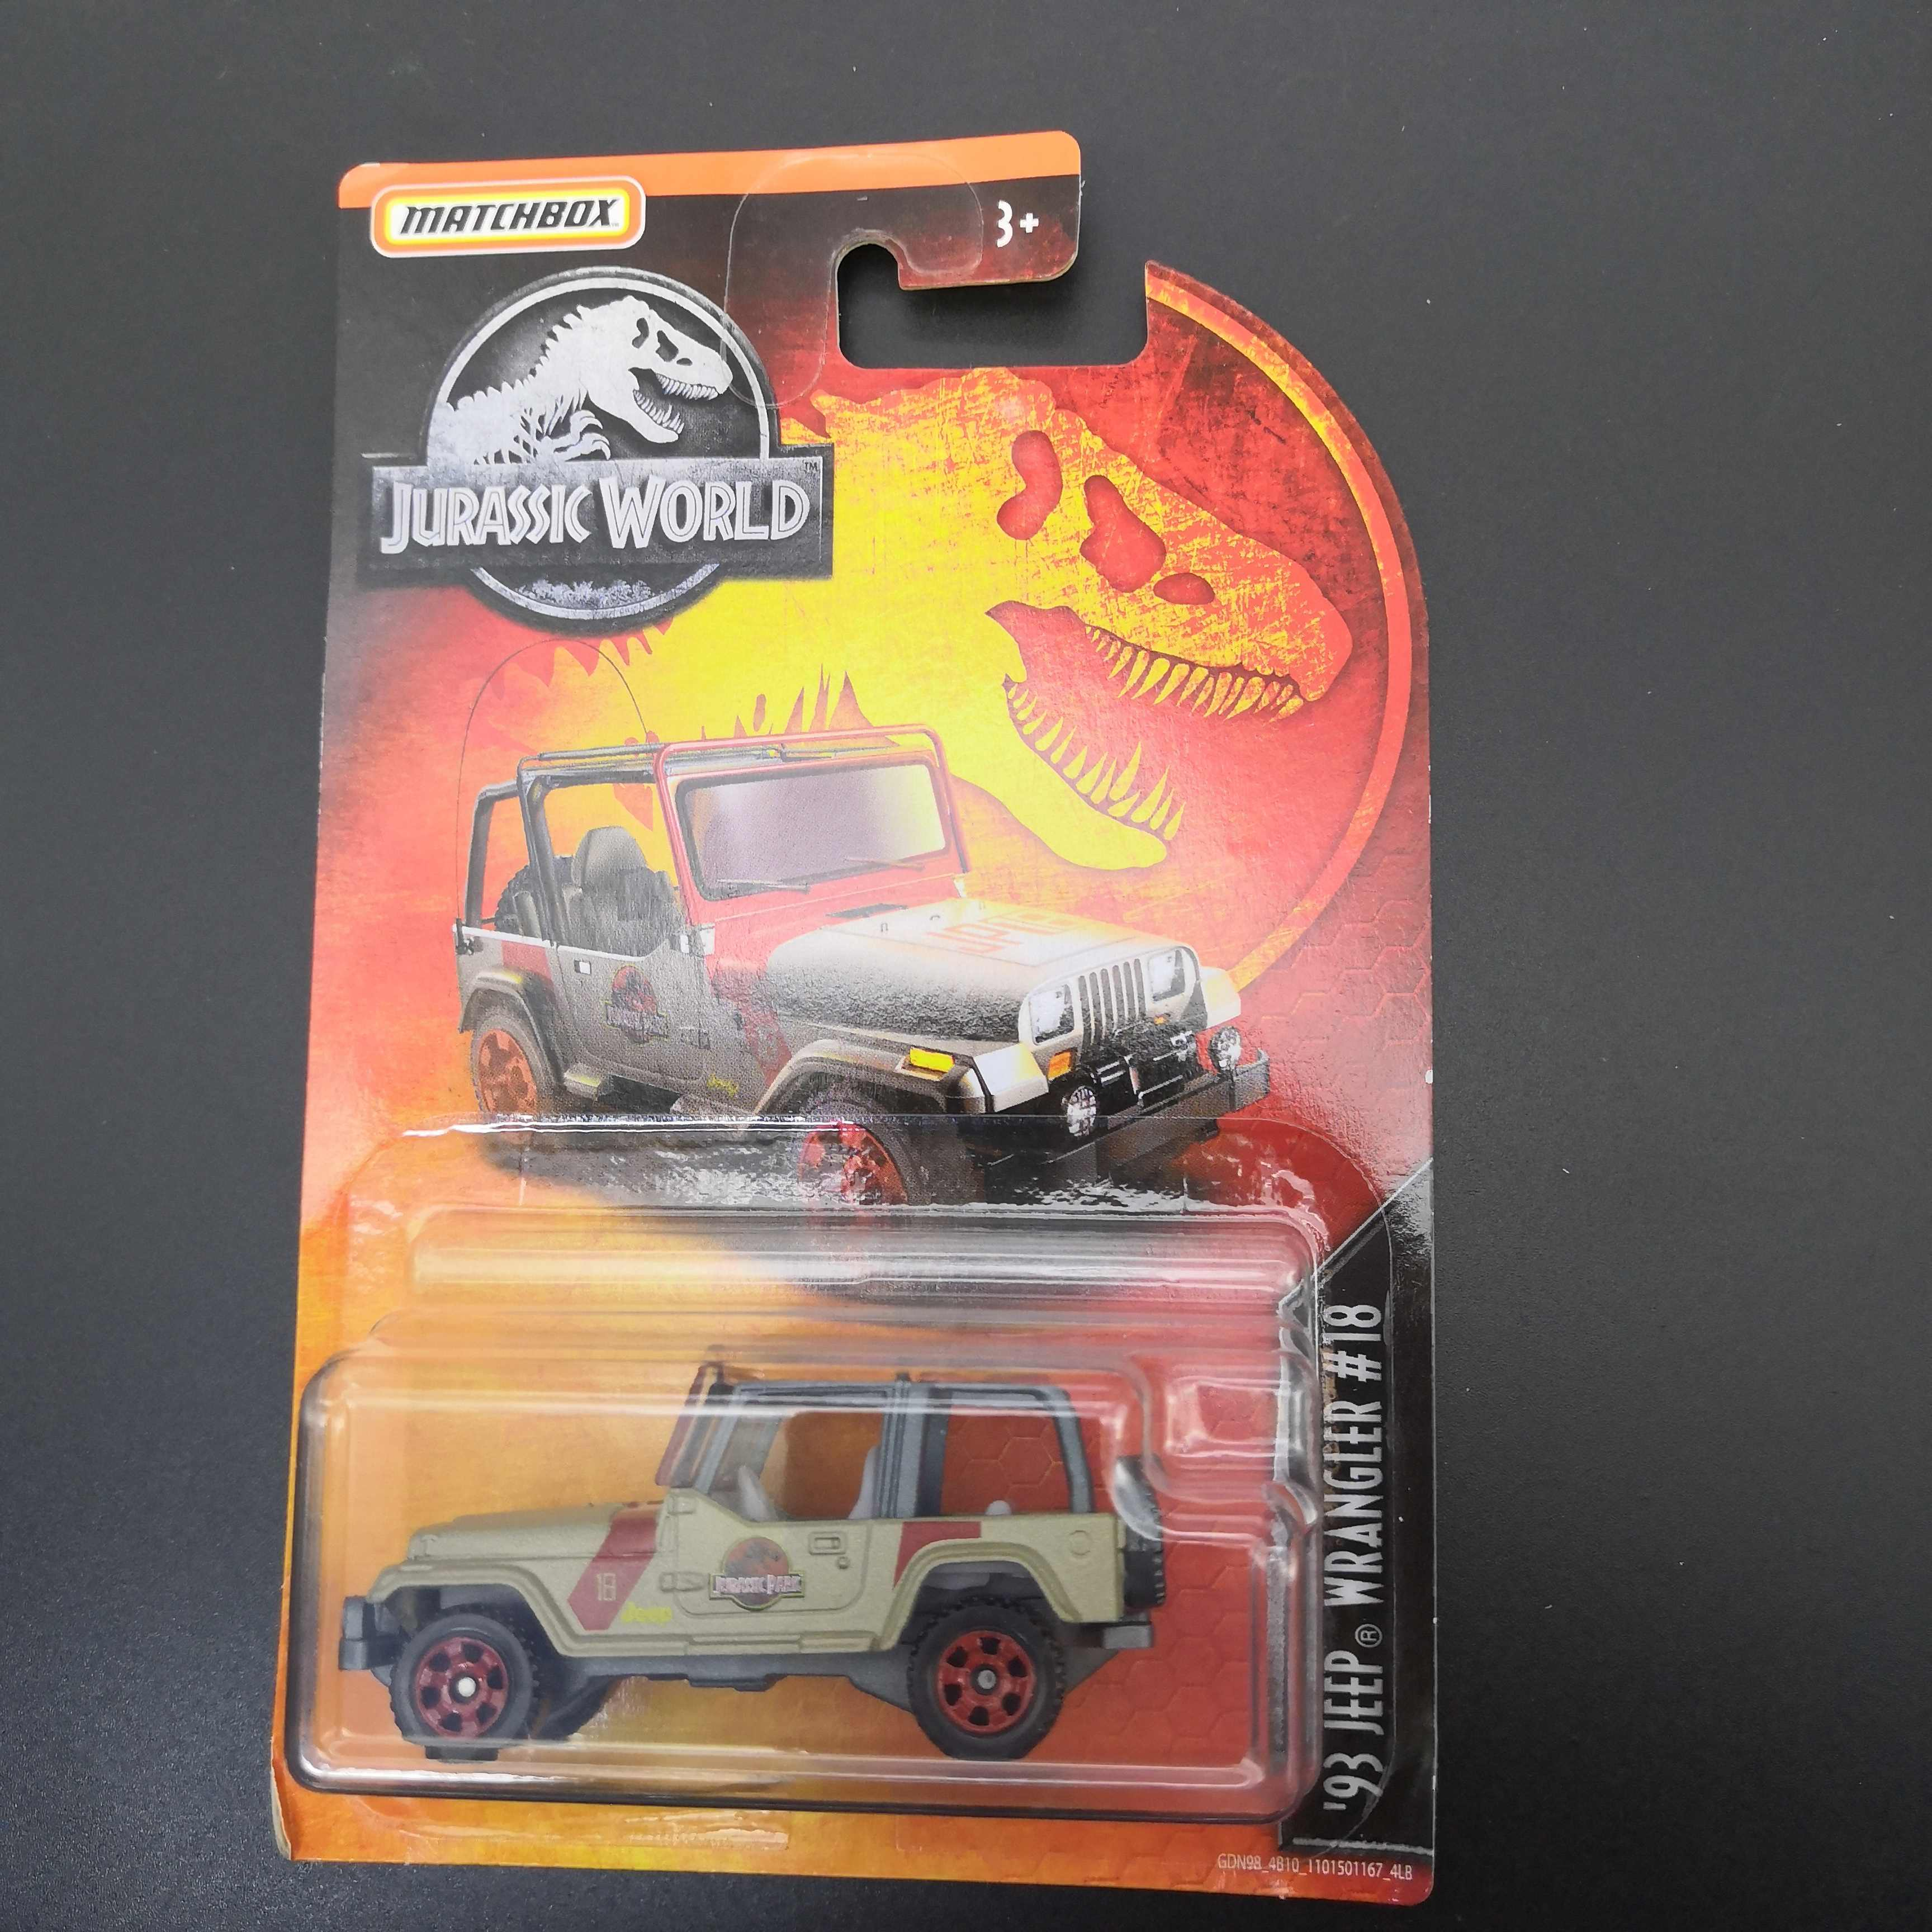 2019 Matchbox Car 1:64 Sports Car JURASSIC WORLD 93 JEEP WRANGLER 18  Metal Material Body Race Car Collection Alloy Car Gift